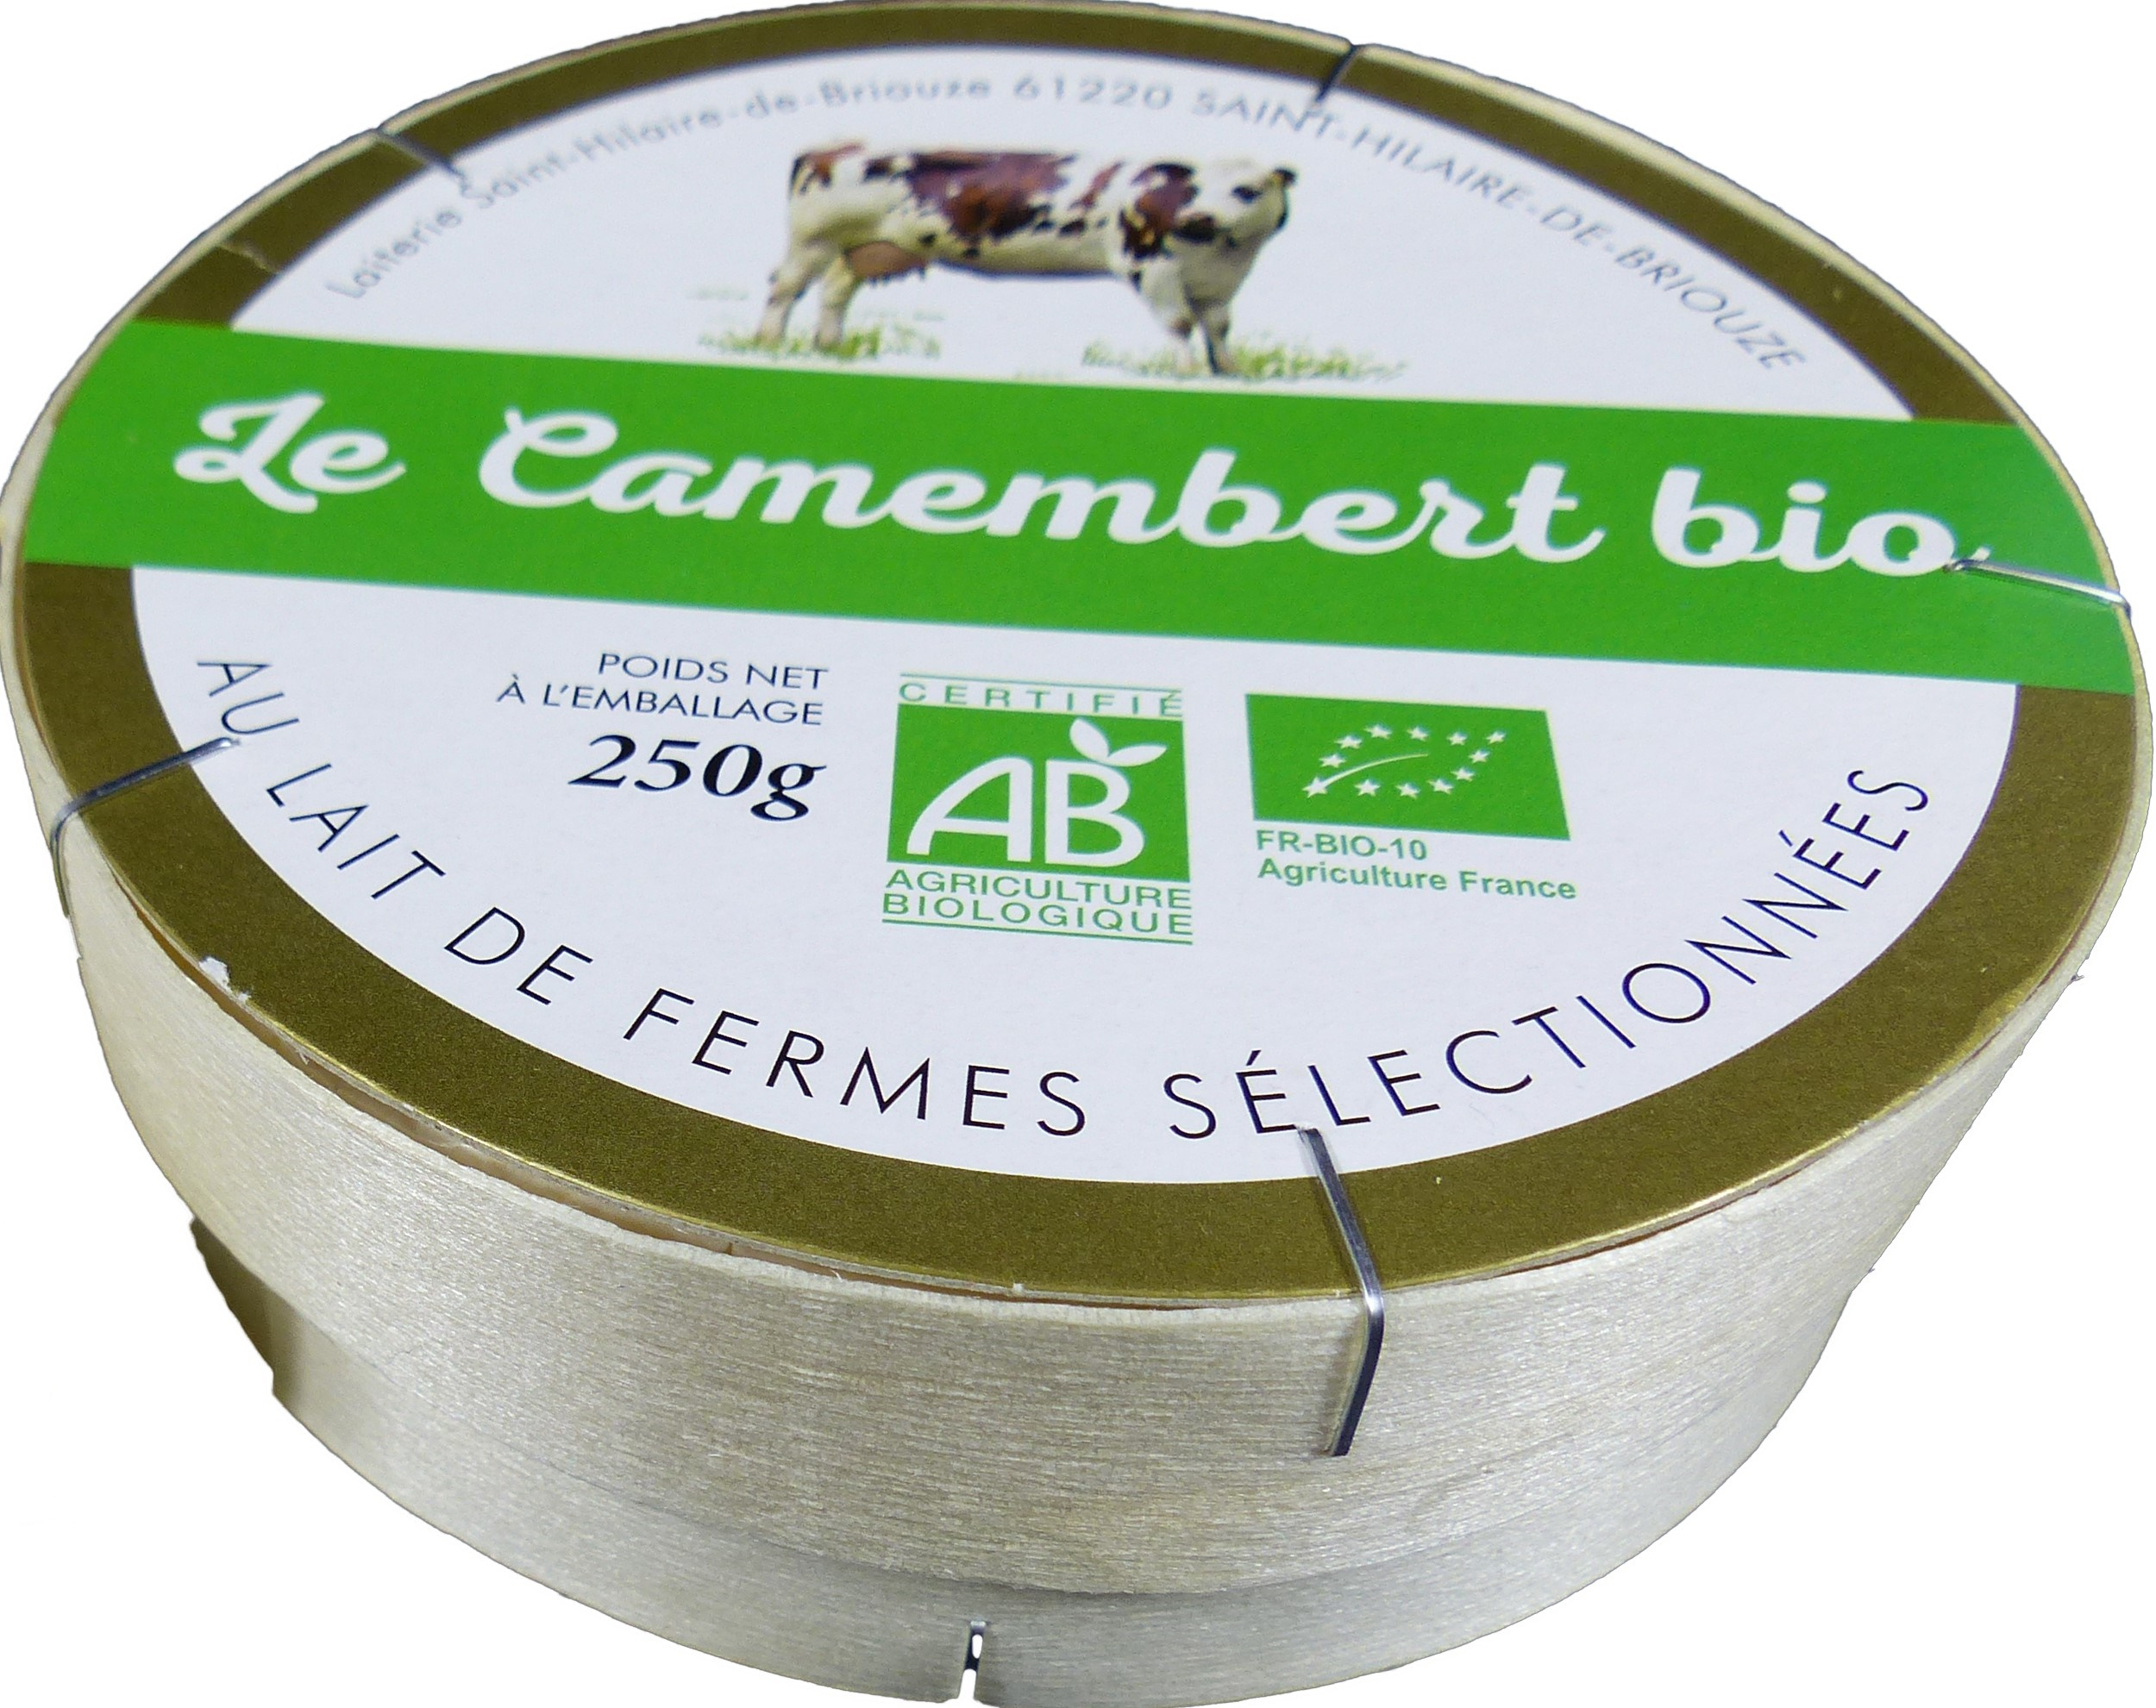 Le Camembert Bio Normandie